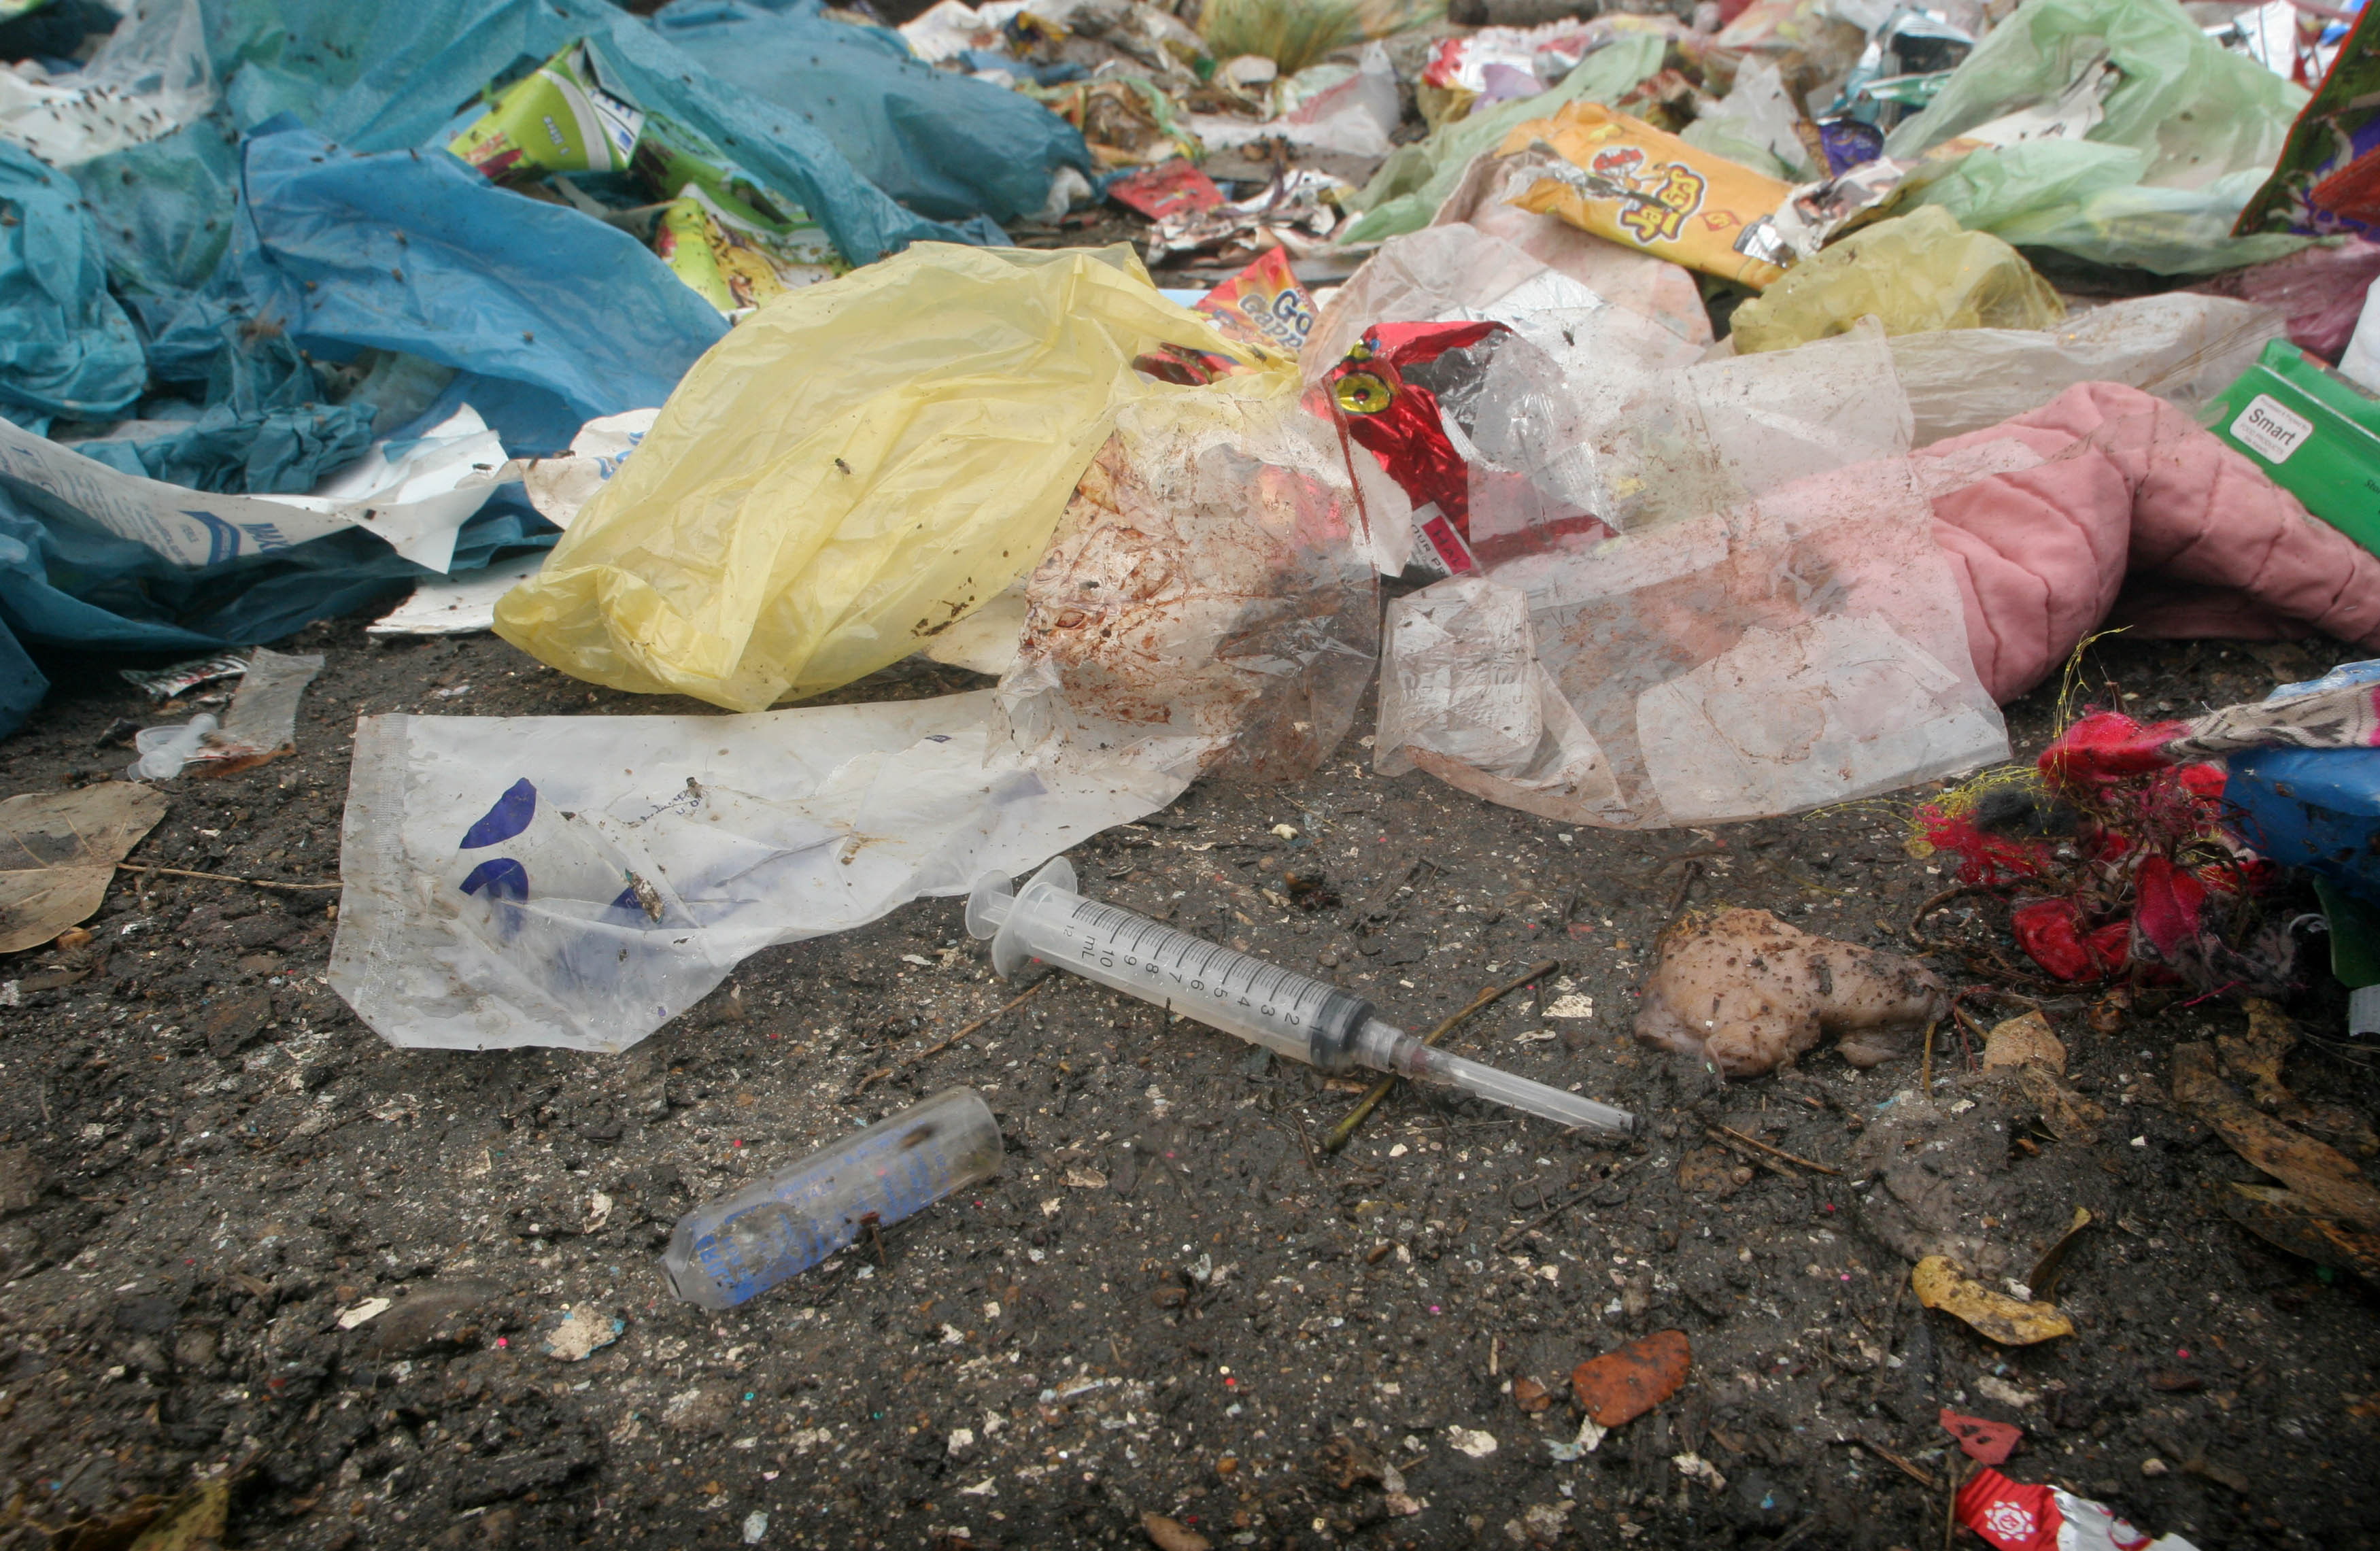 Medical waste disposal measures and ensuring clean water supply are two of the items the judicial commission has asked the hospitals to file a report on. PHOTO: EXPRESS